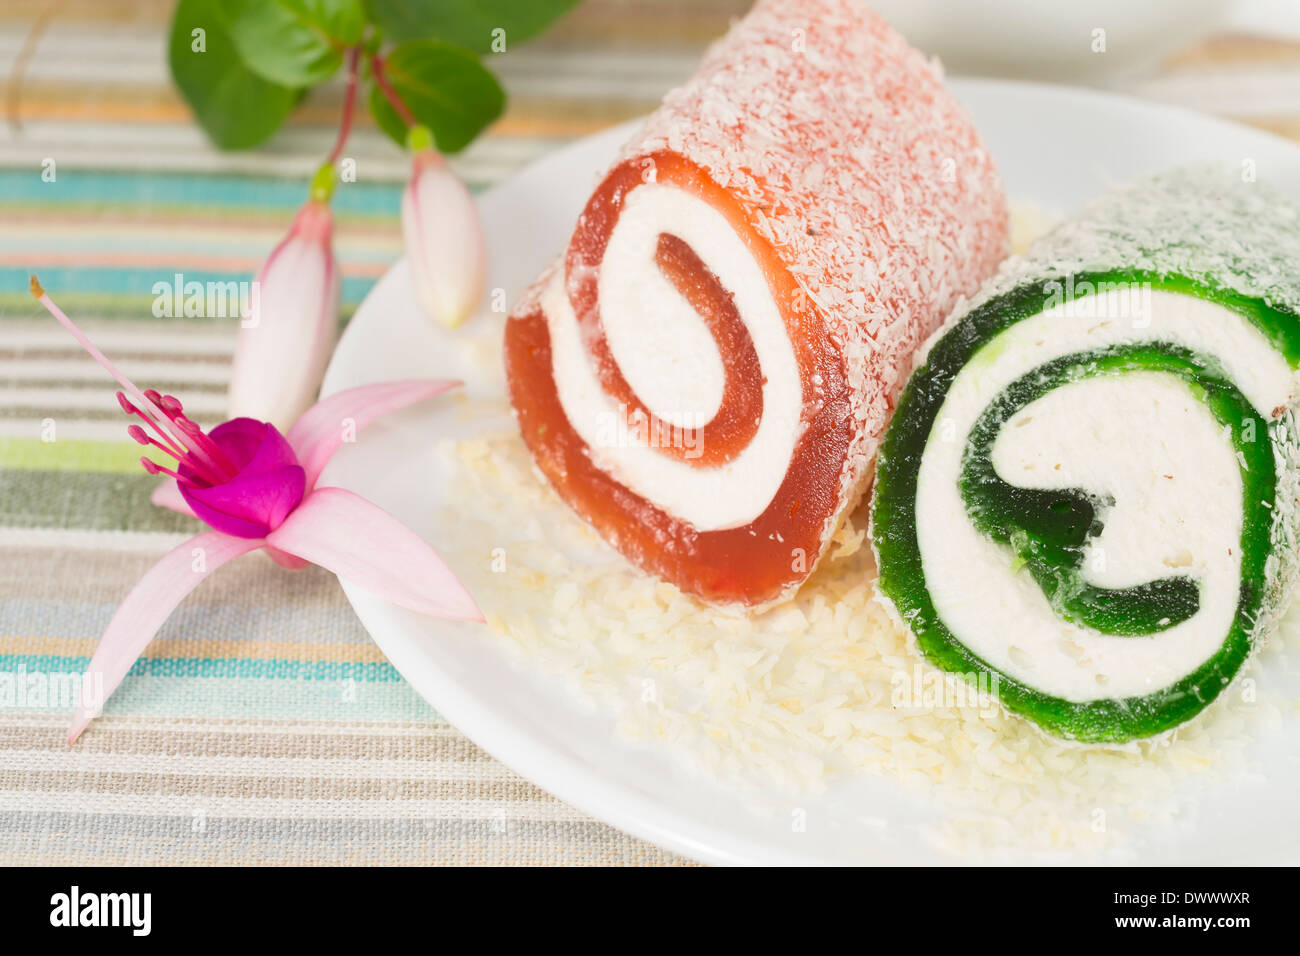 sweet dessert with flower fuchsia in a plate, Turkish Culture Stock